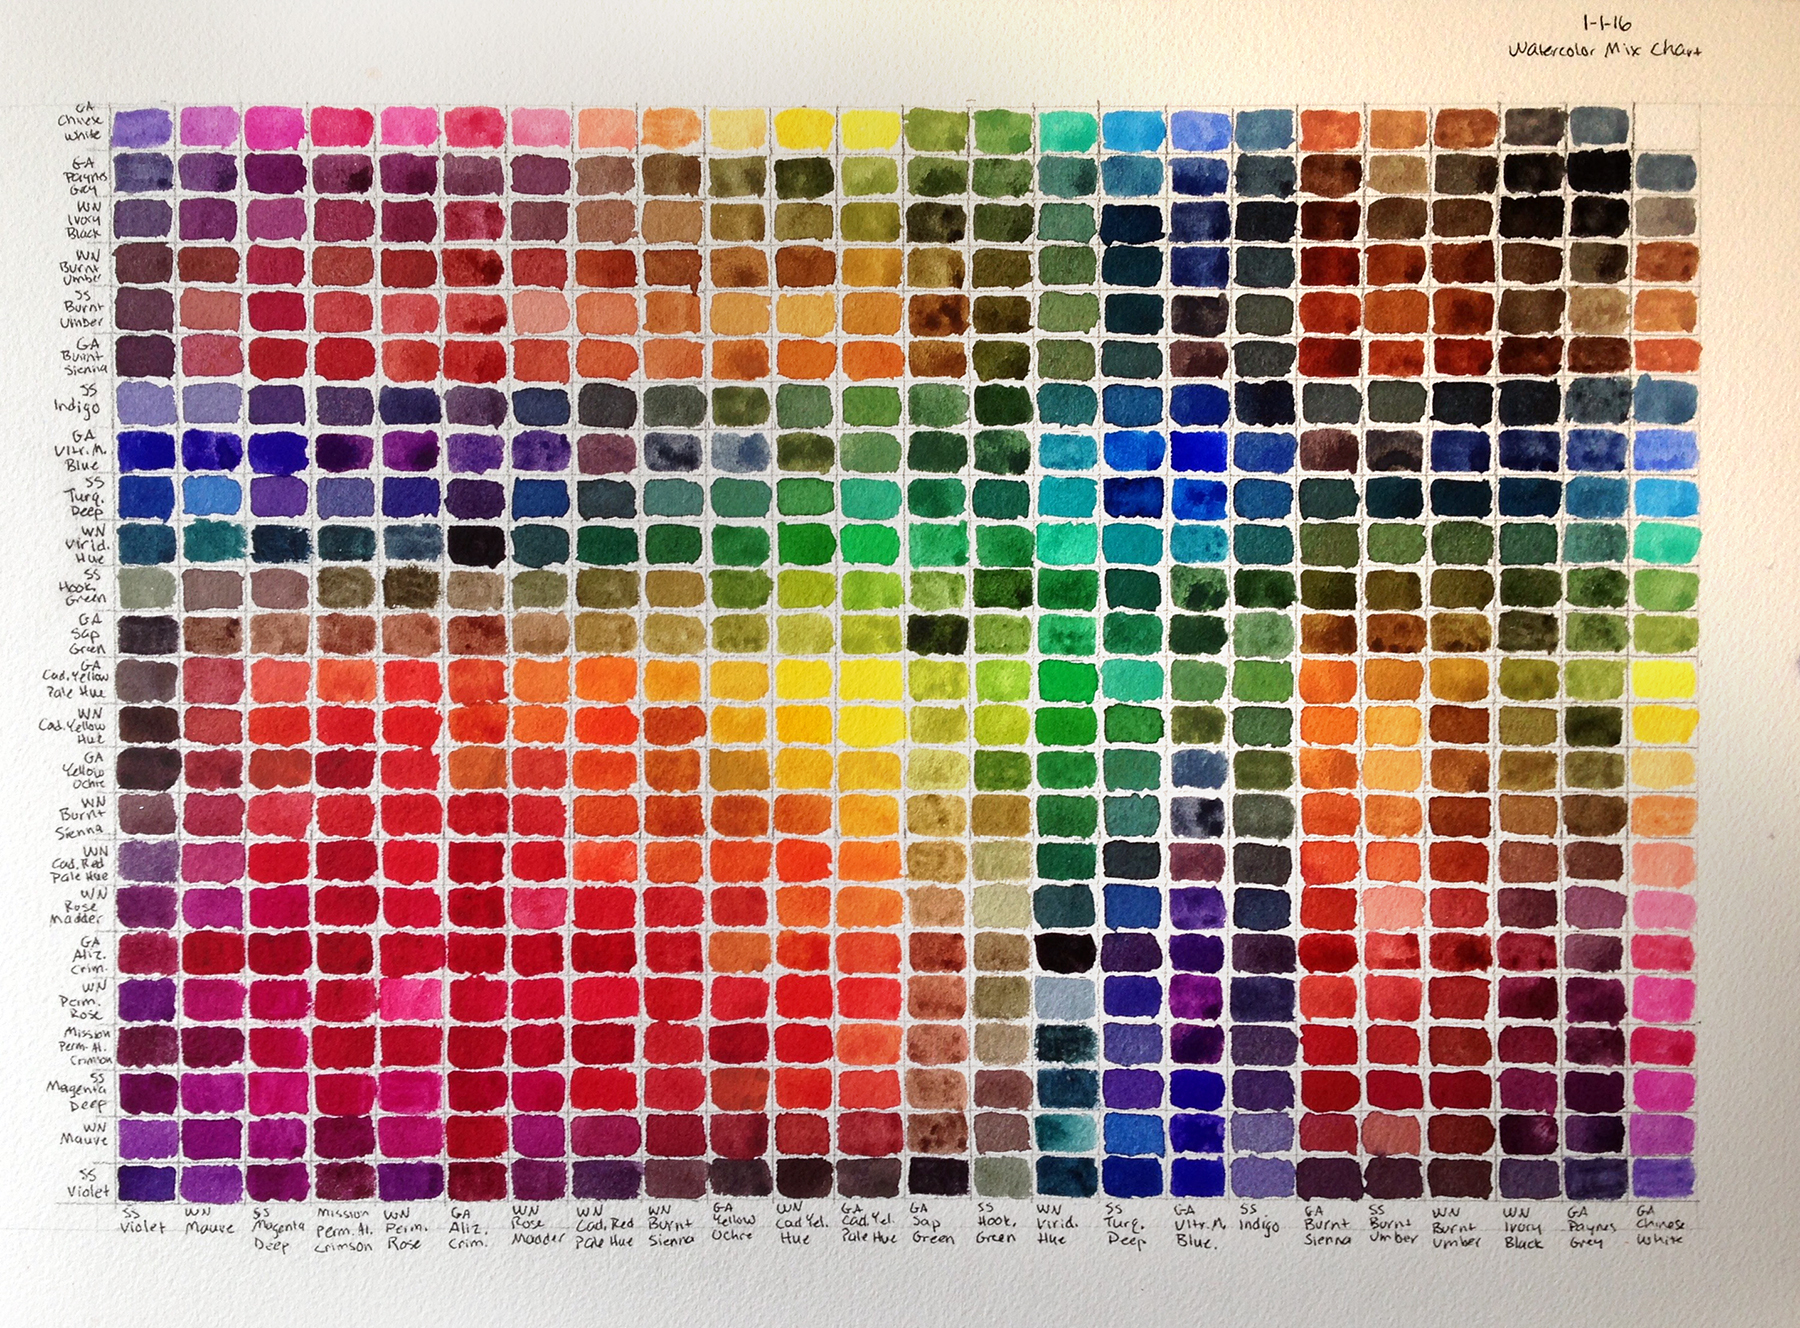 Get to know your watercolors also watercolor mix chart  odyssey art rh odysseyart wordpress